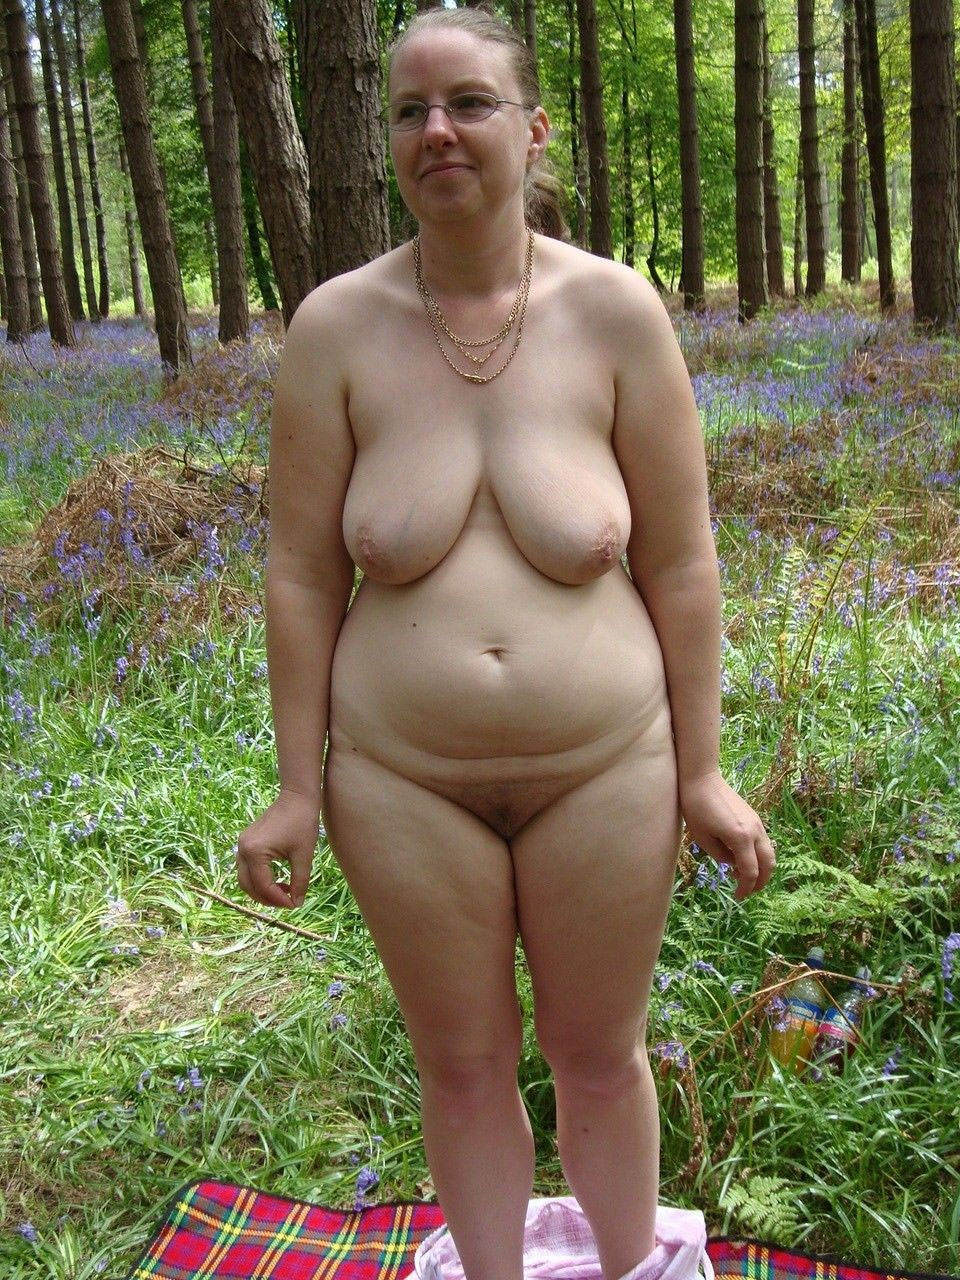 Can recommend Chubby amature women nude